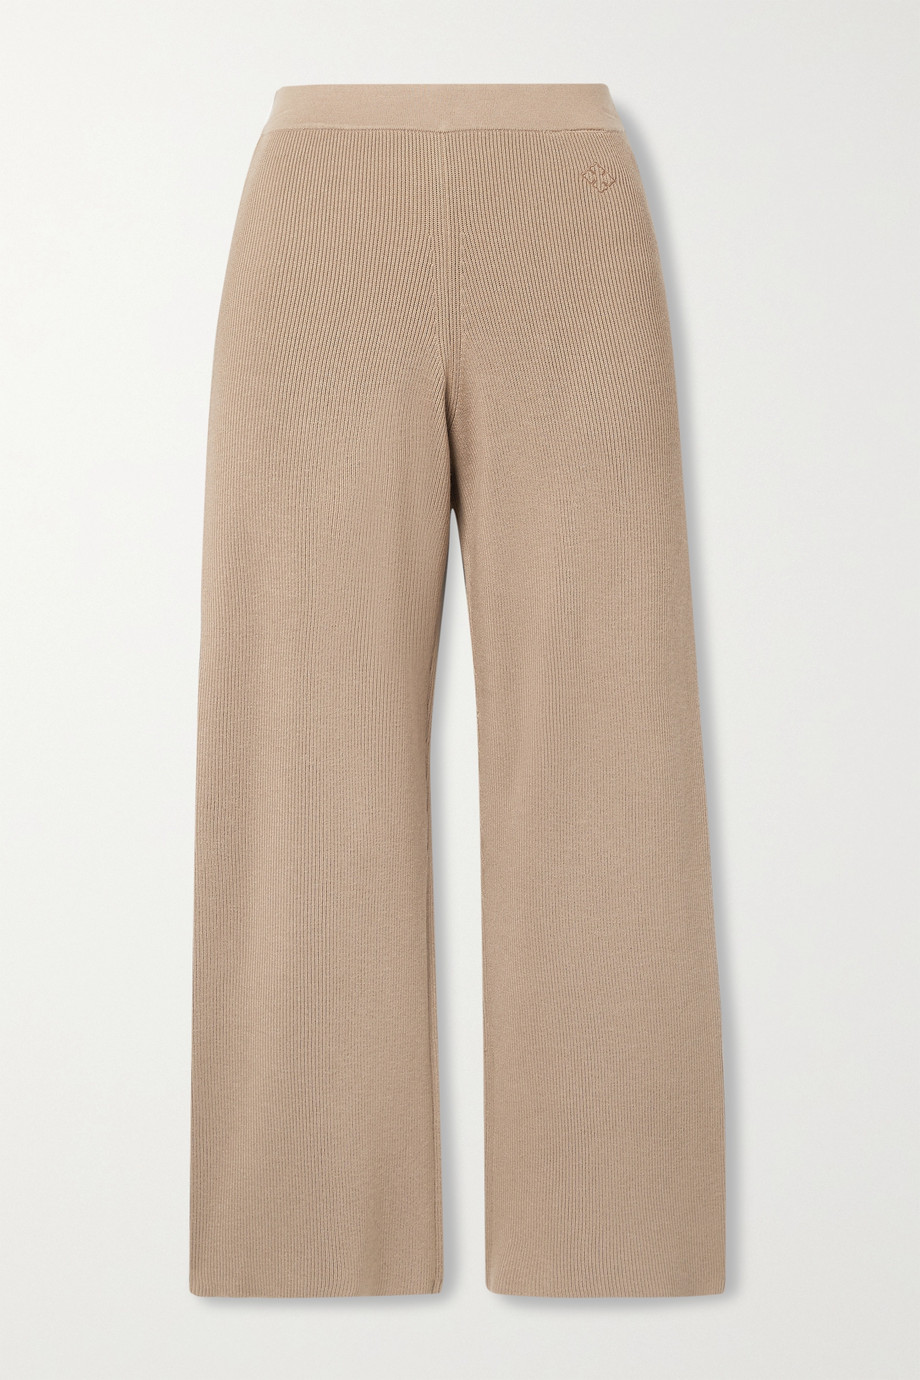 BY MALENE BIRGER Belis cropped ribbed-knit straight-leg pants